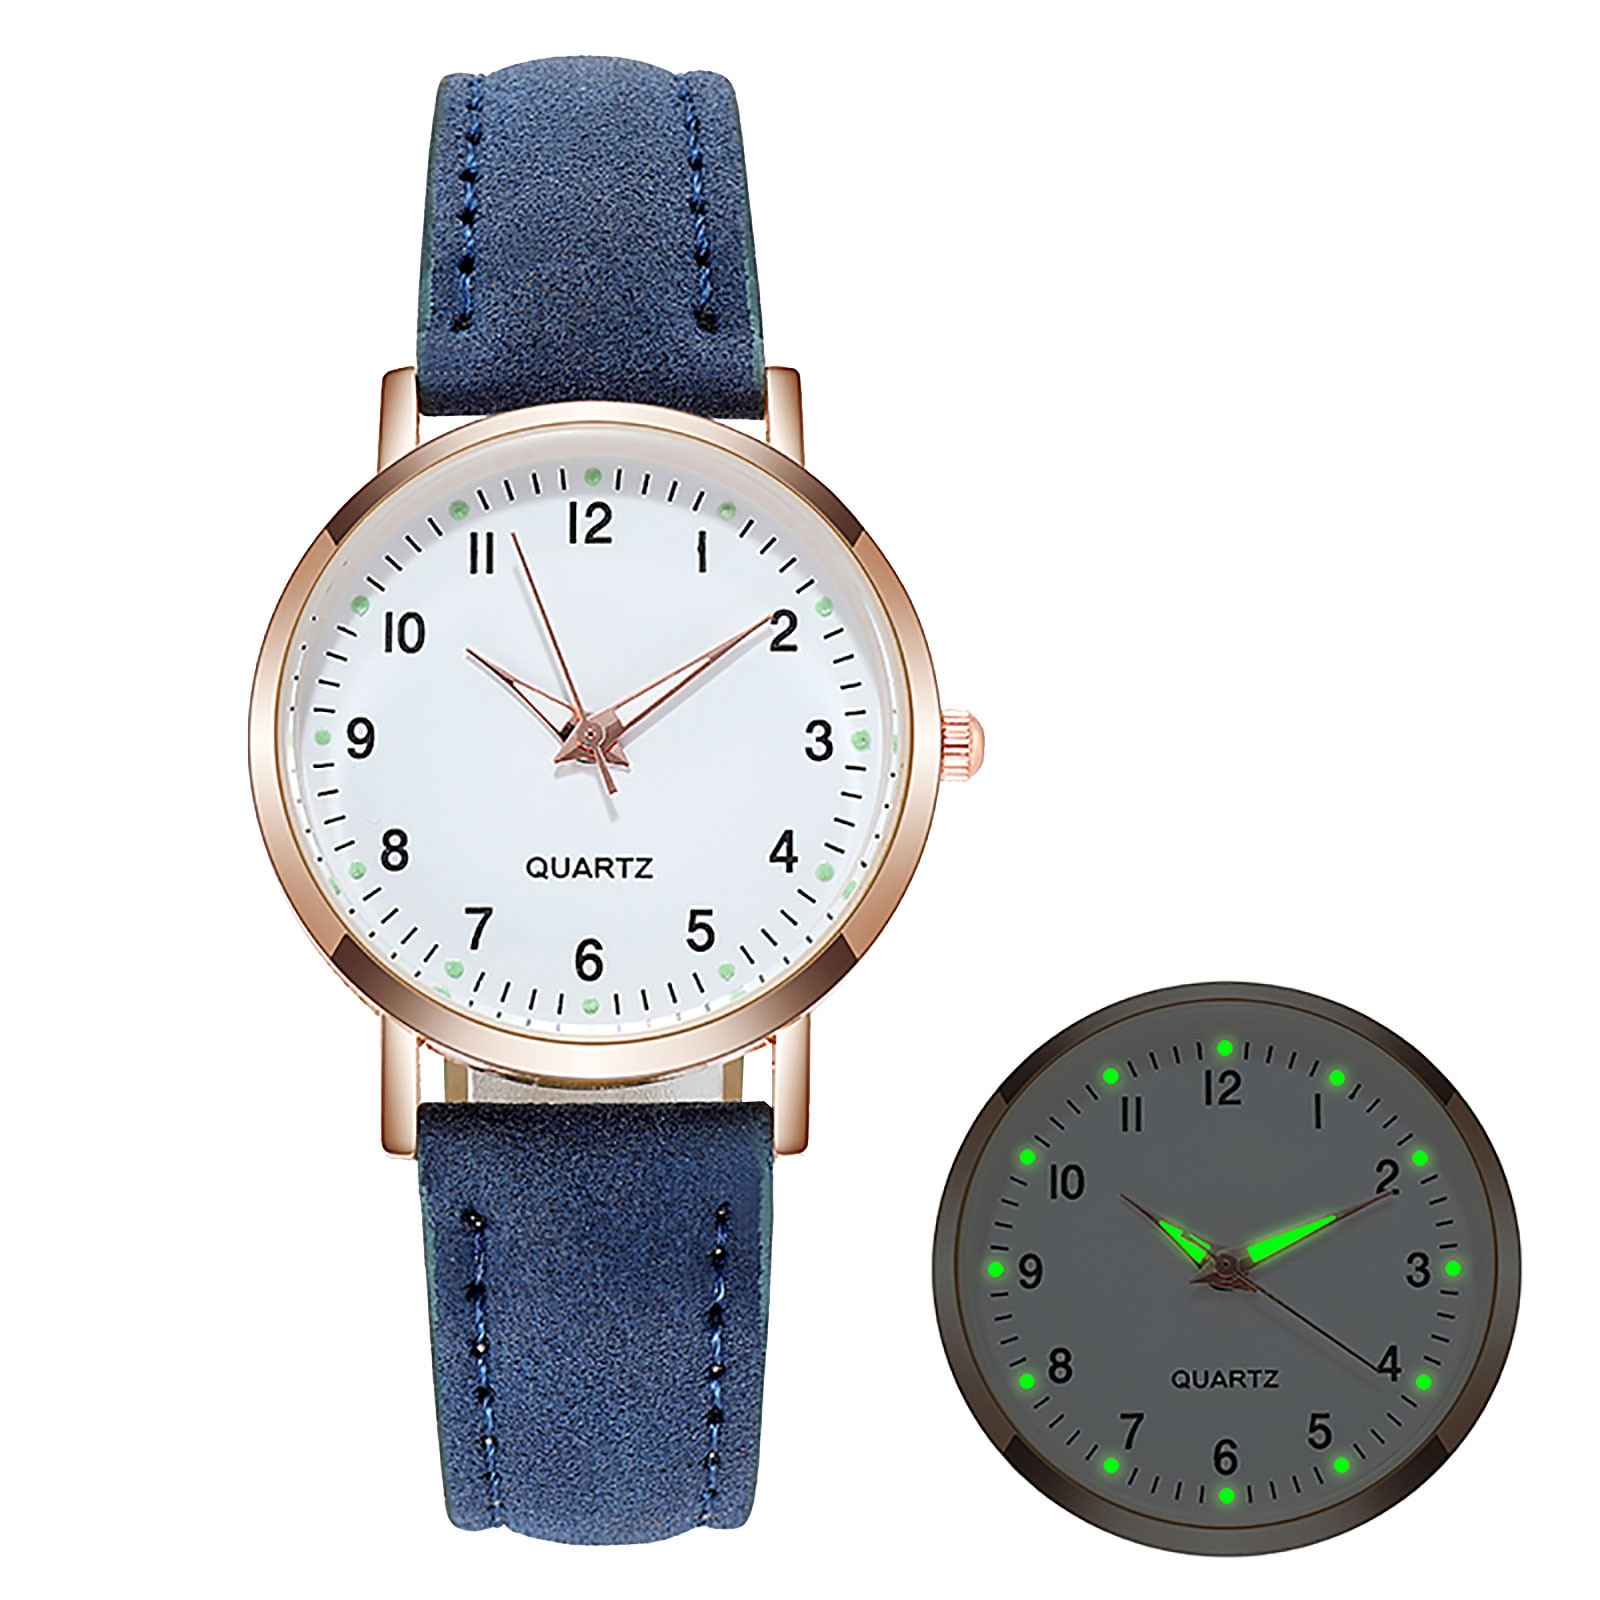 Small New Watch Women Fashion Casual Leather Belt Watches Simple Ladies' Small Dial Quartz Clock Dre